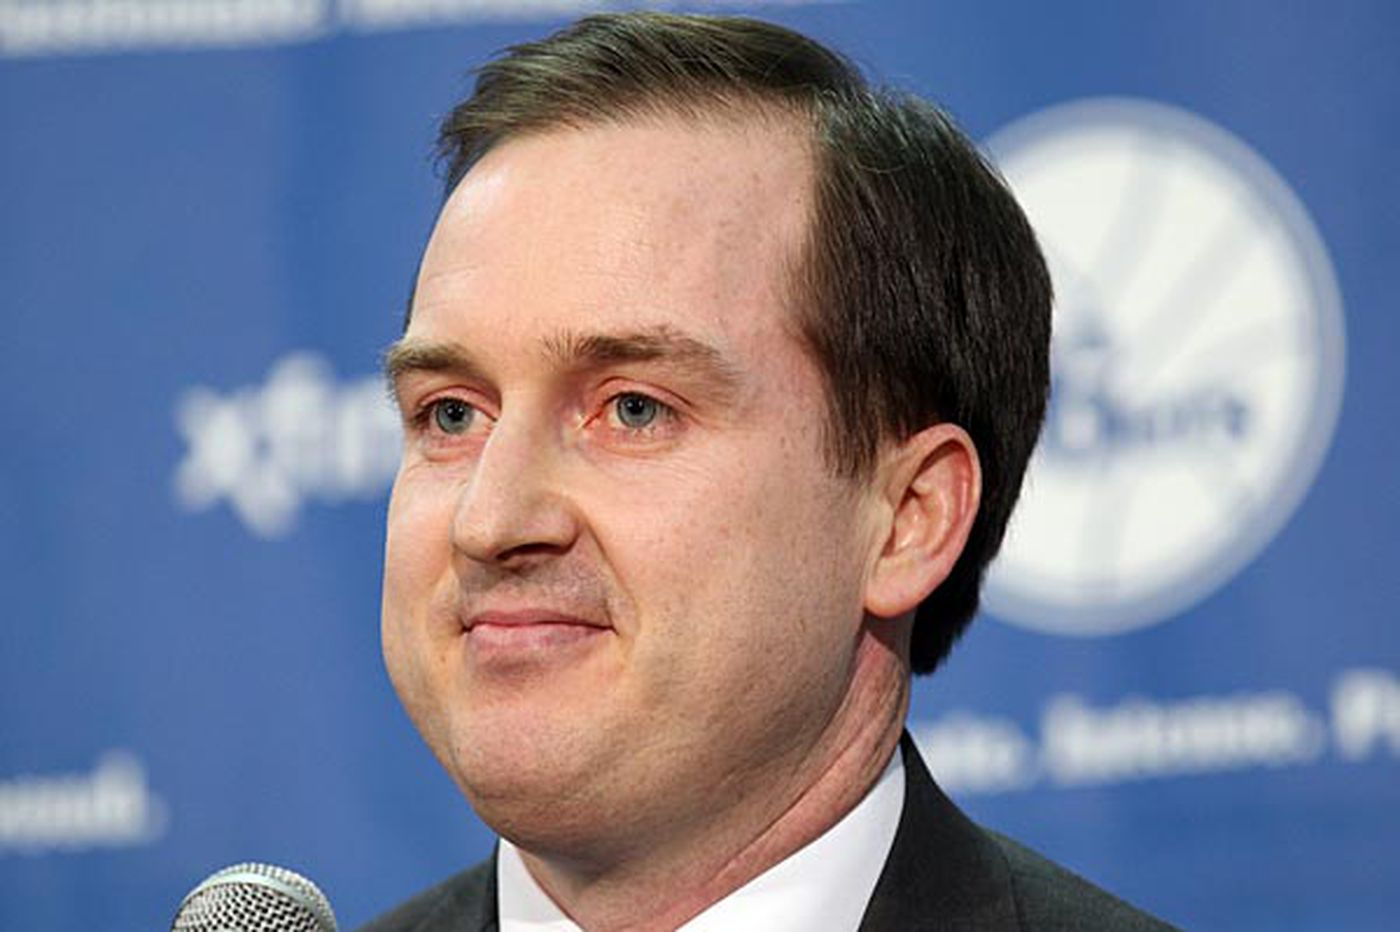 Learn about analytics before you rip Sixers' hire